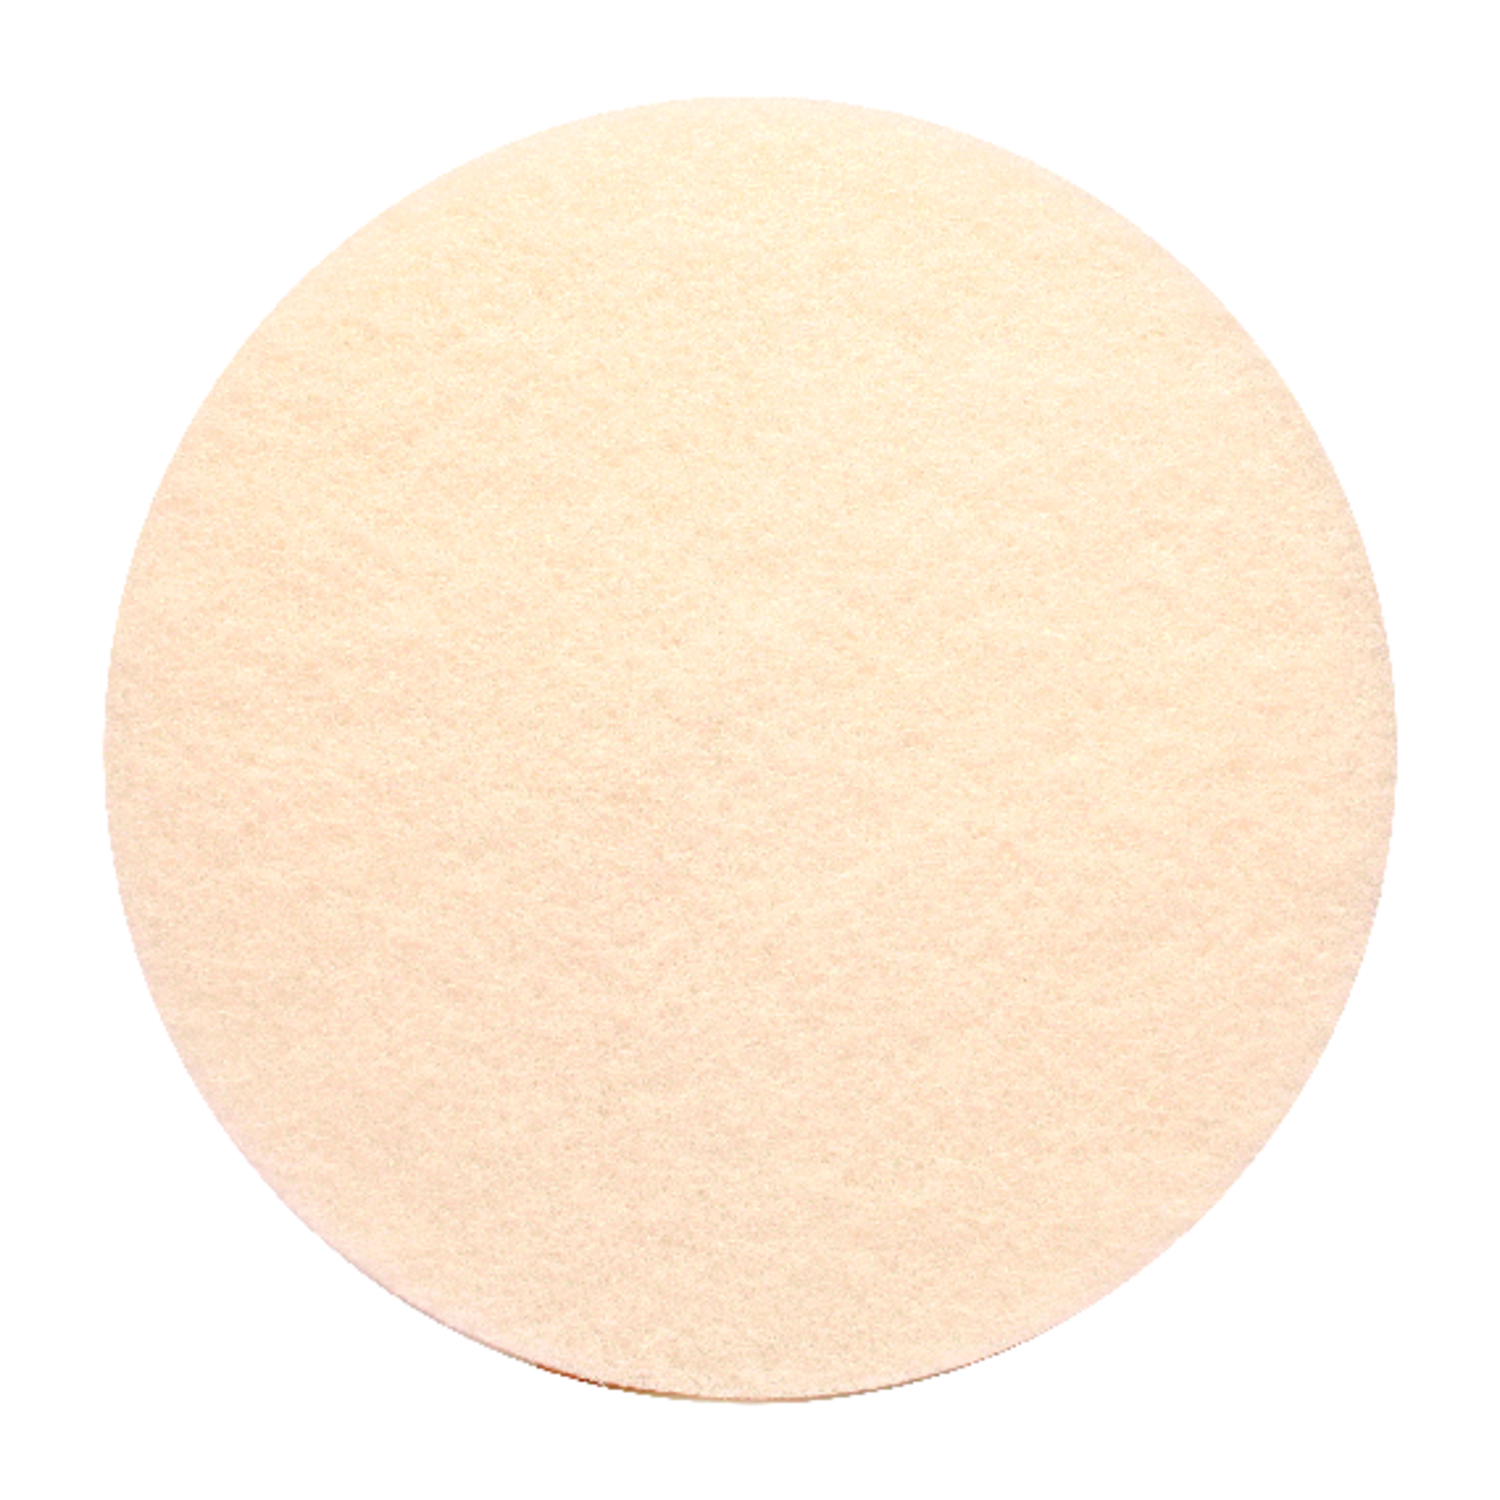 Gator  17 in. Dia. Floor Pad Disc White  White  Non-Woven Natural/Polyester Fiber